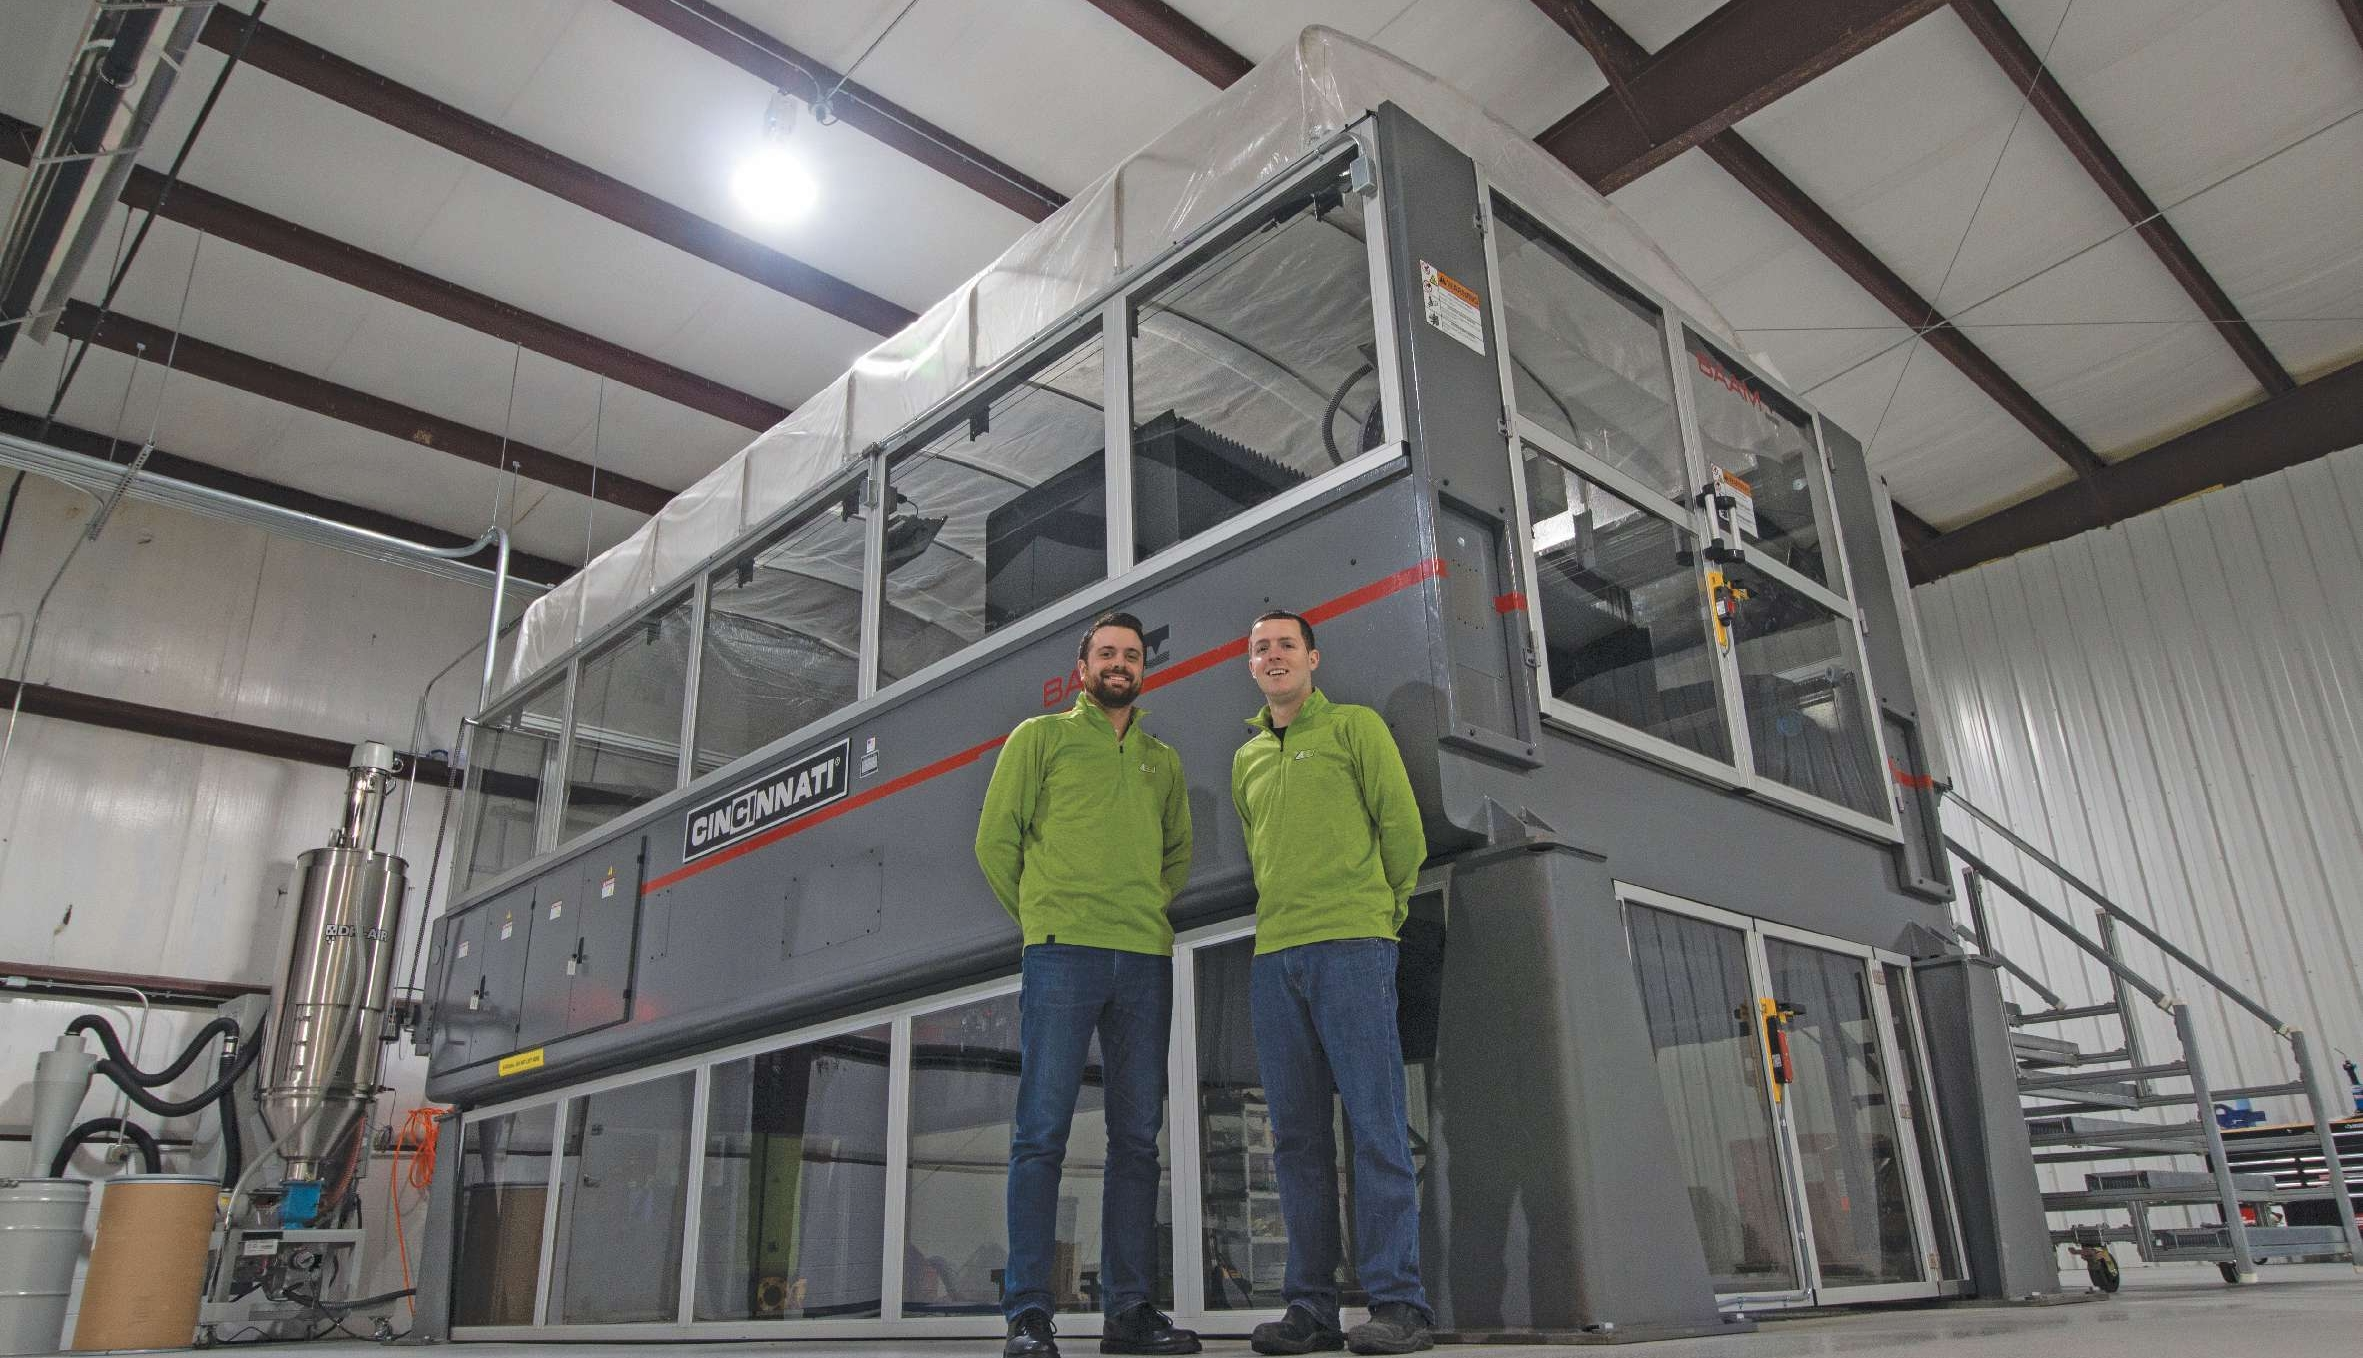 Andrew Bader and Austin Schmidt stand in front of the Big Area Additive Manufacturing machine that is the basis for their business.